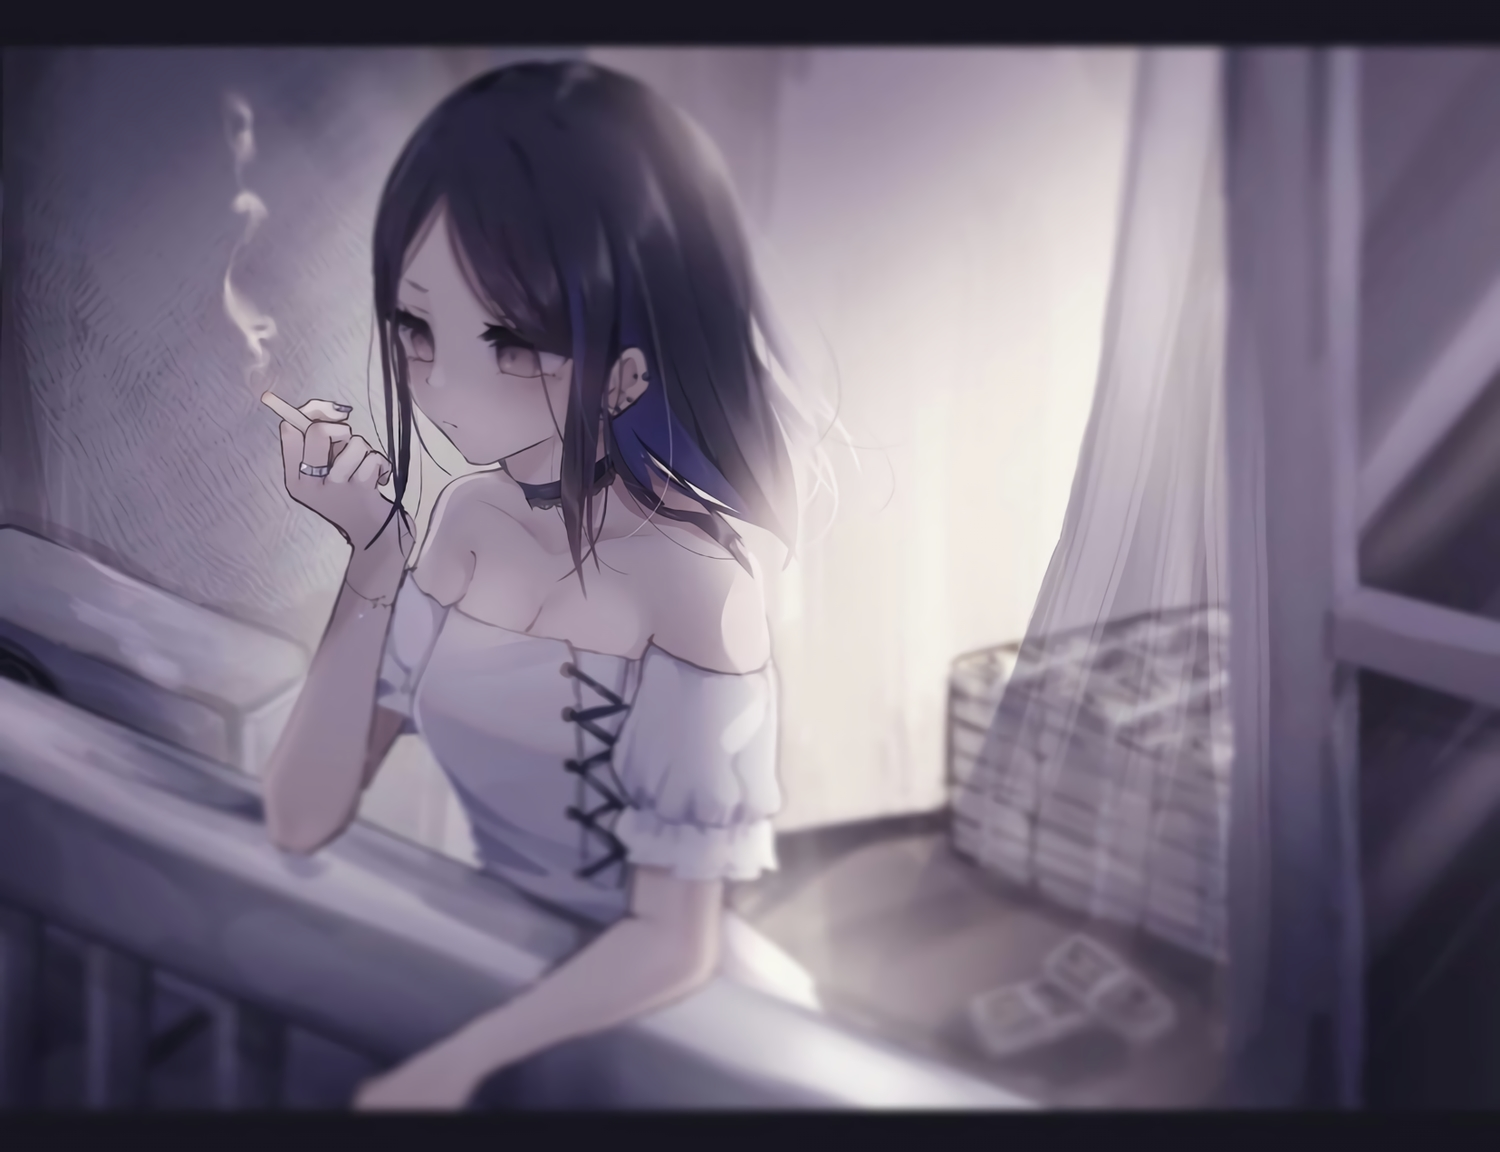 black_hair breasts choker cigarette cleavage gray_eyes monochrome original tsuruse waifu2x